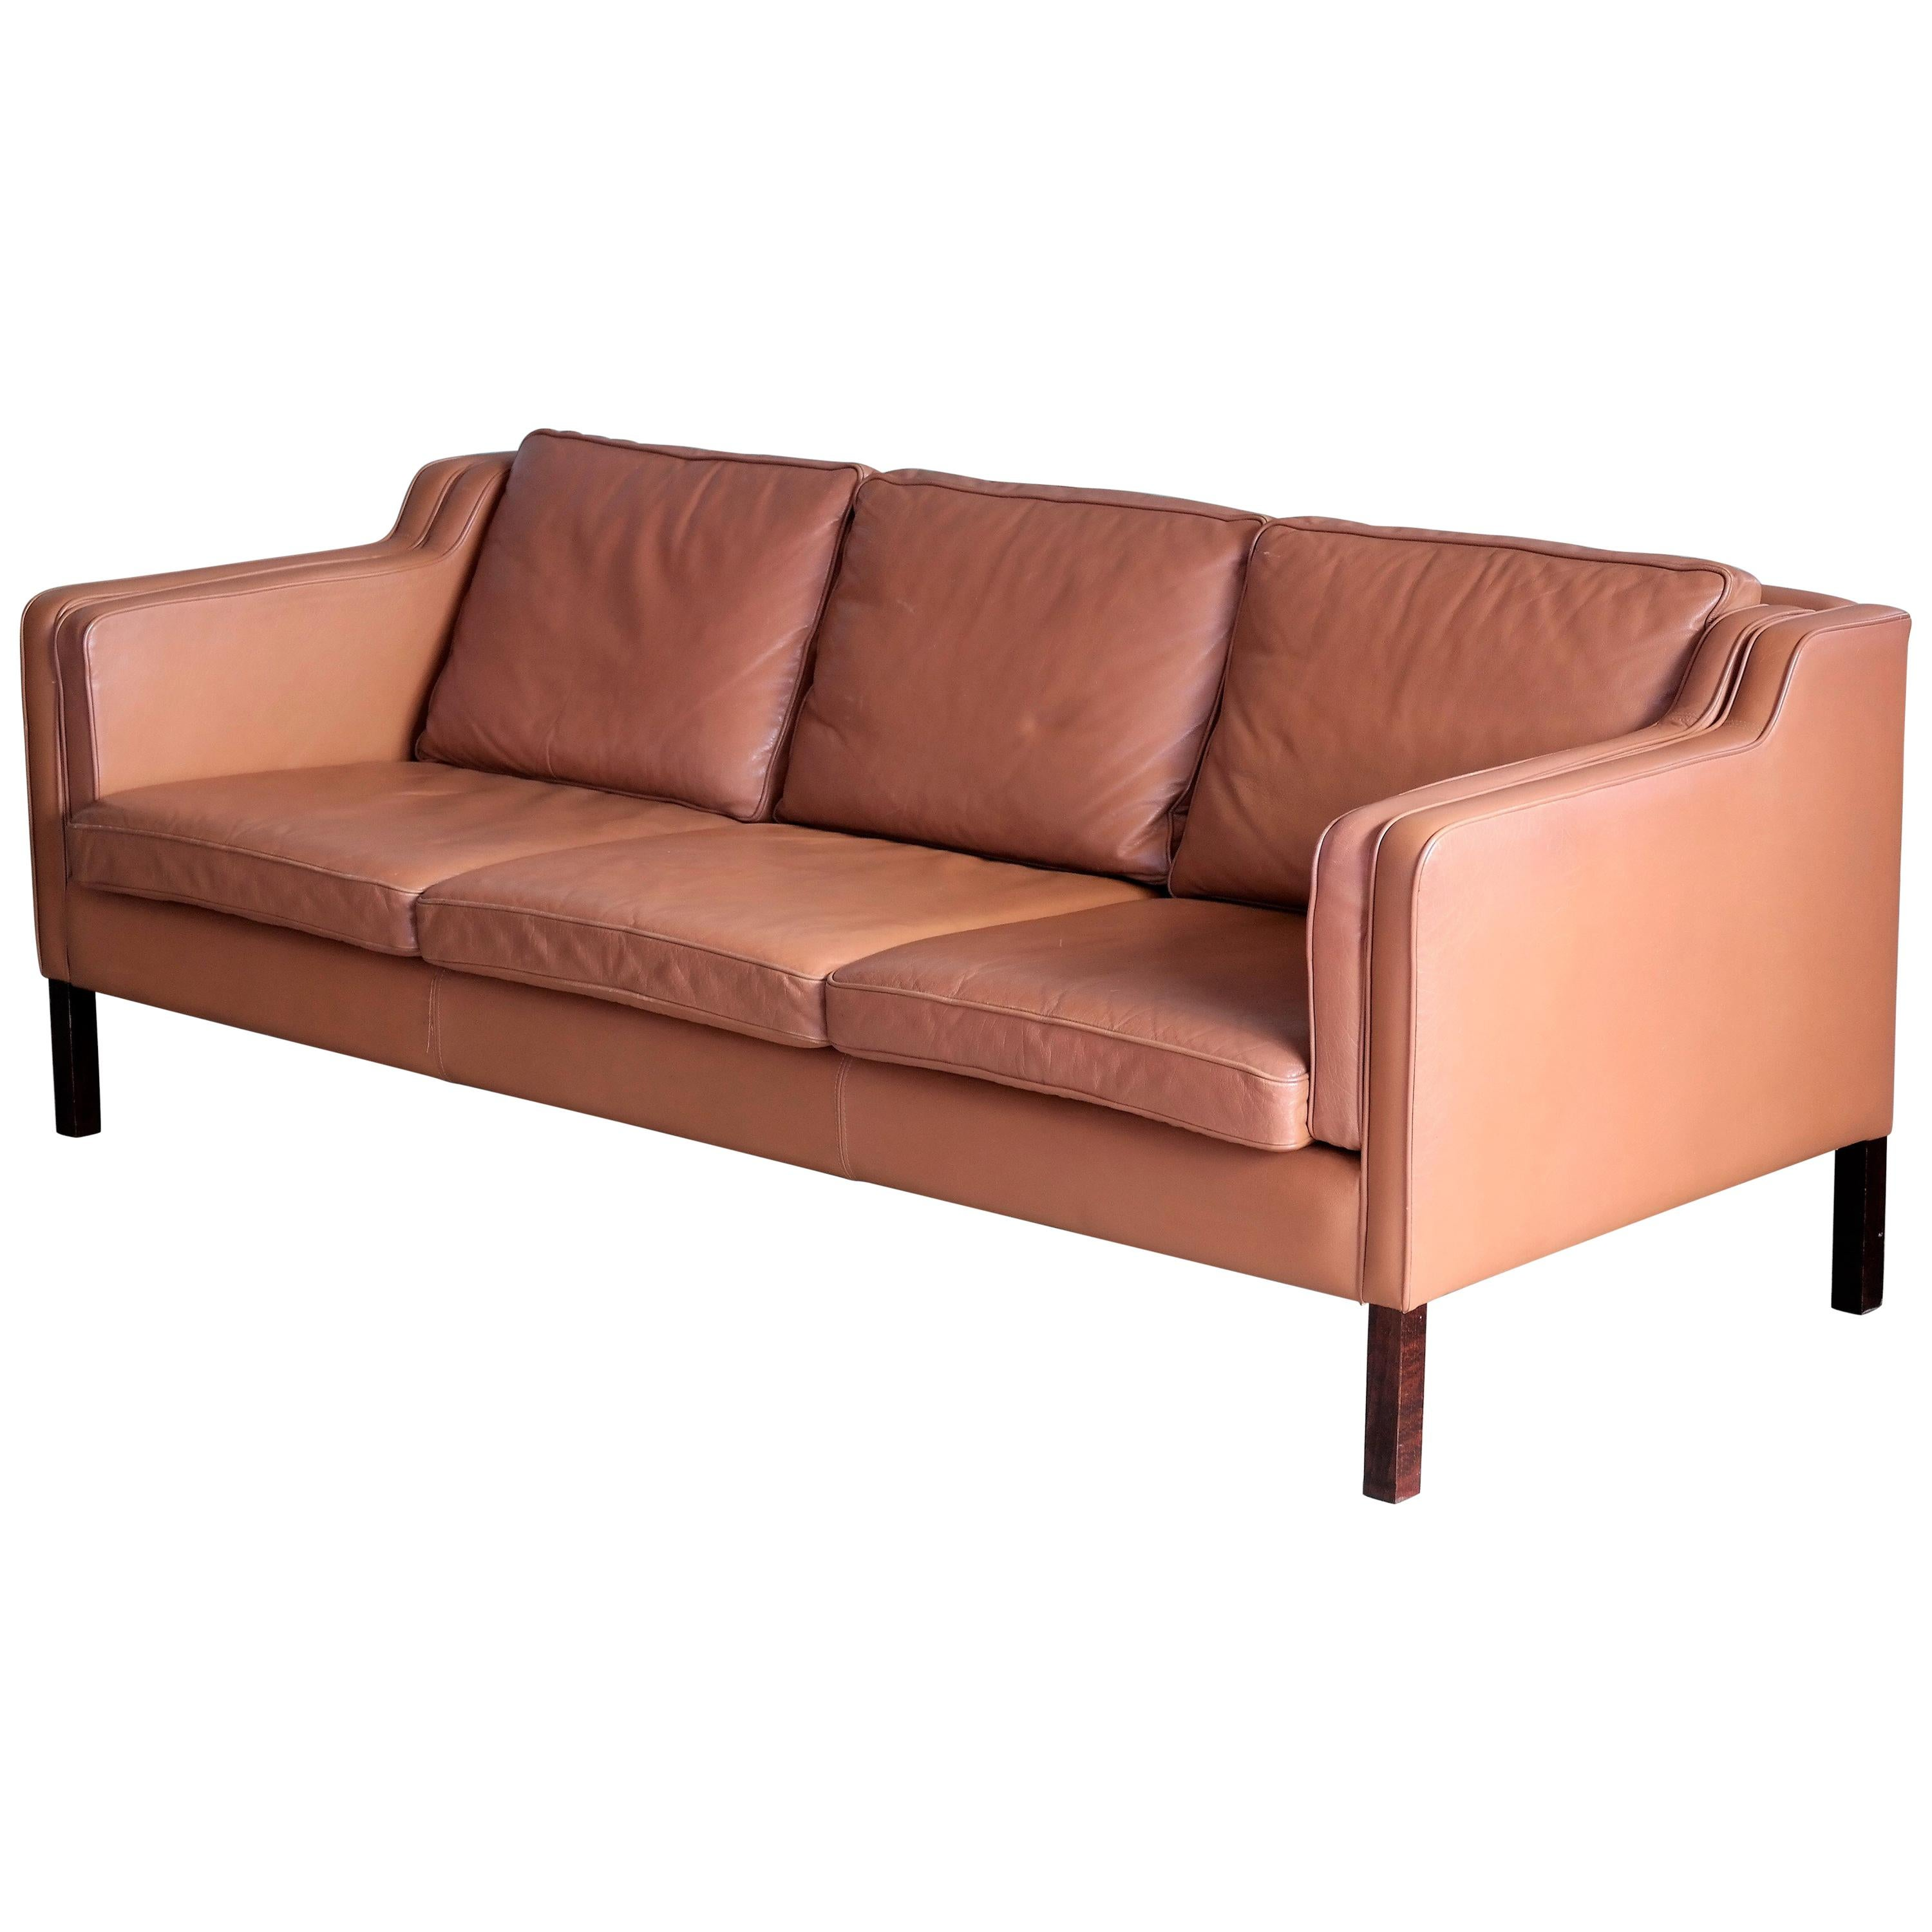 Sofa Cognacfarben Borge Mogensen Style Model 2213 Three Seat Sofa In Cognac Leather By Stouby